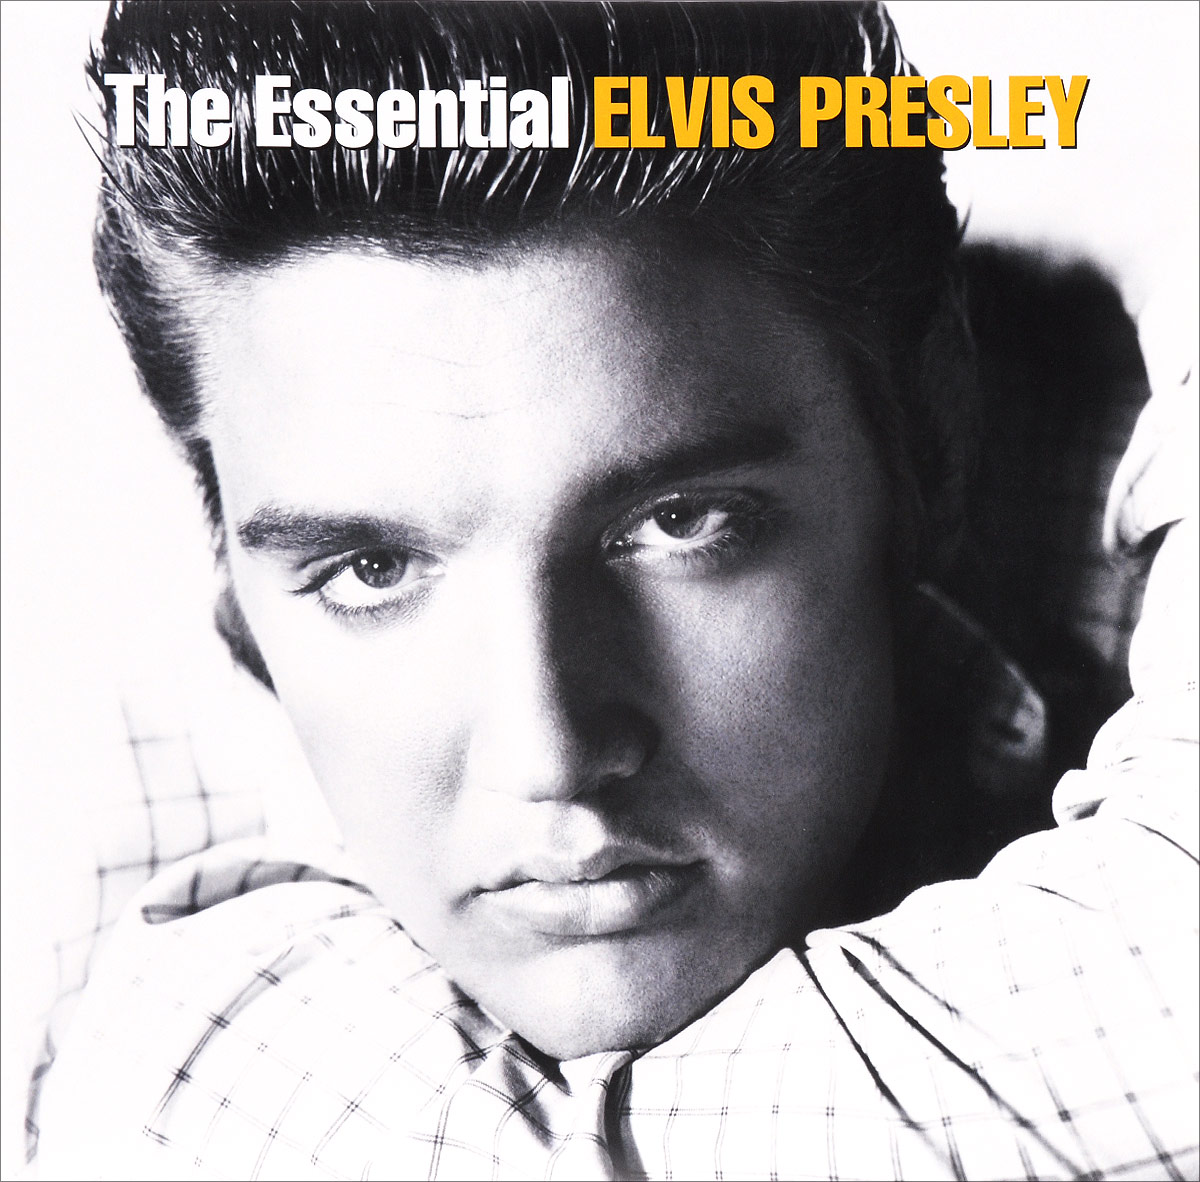 Элвис Пресли Elvis Presley. The Essential (2 LP) collins essential chinese dictionary